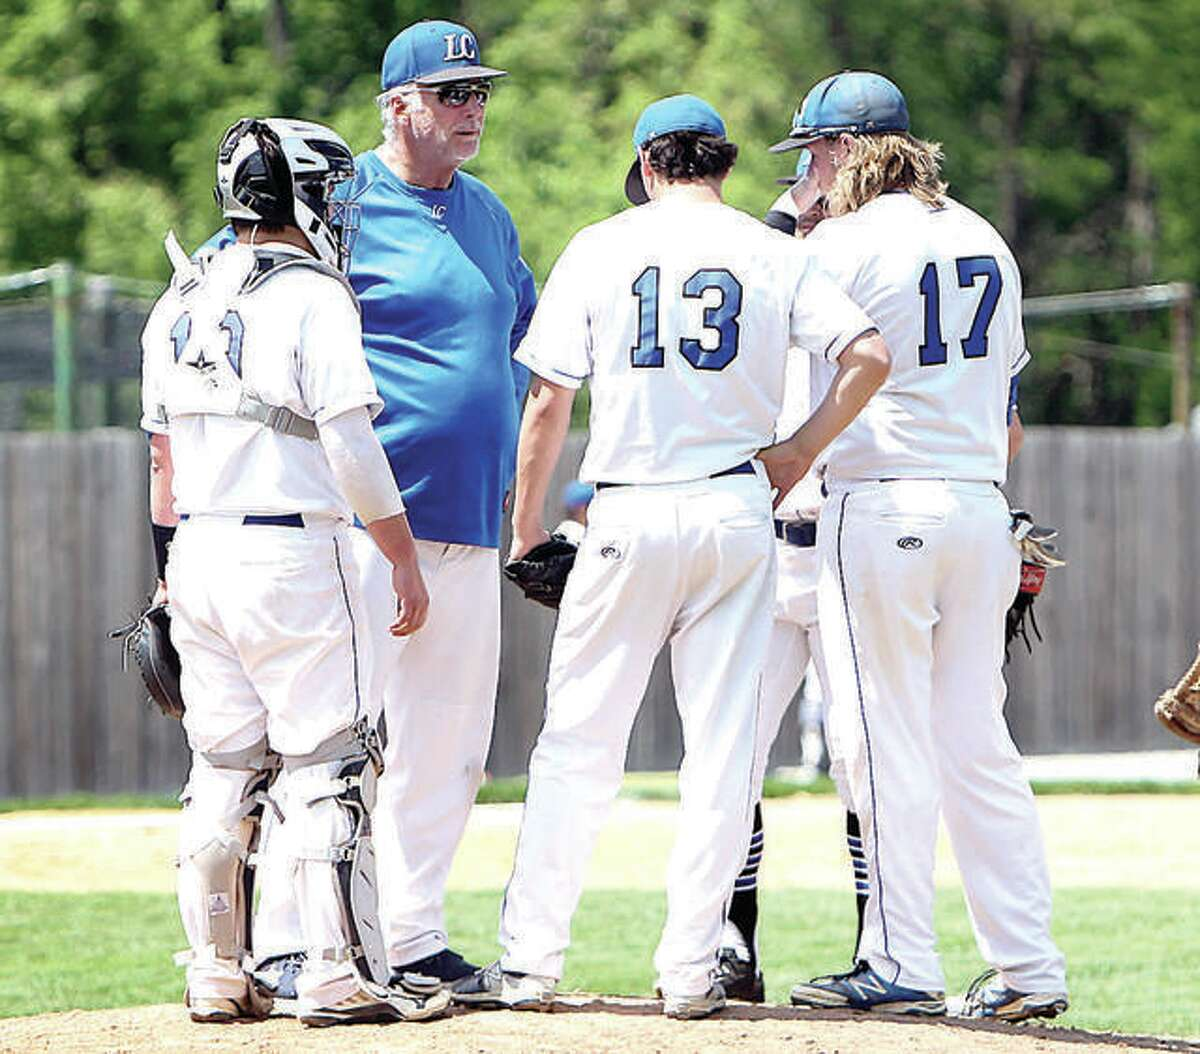 Lewis and Clark Community College baseball coach Randy Martz, second from left, visits the mound during a 2017 game in Godfrey.